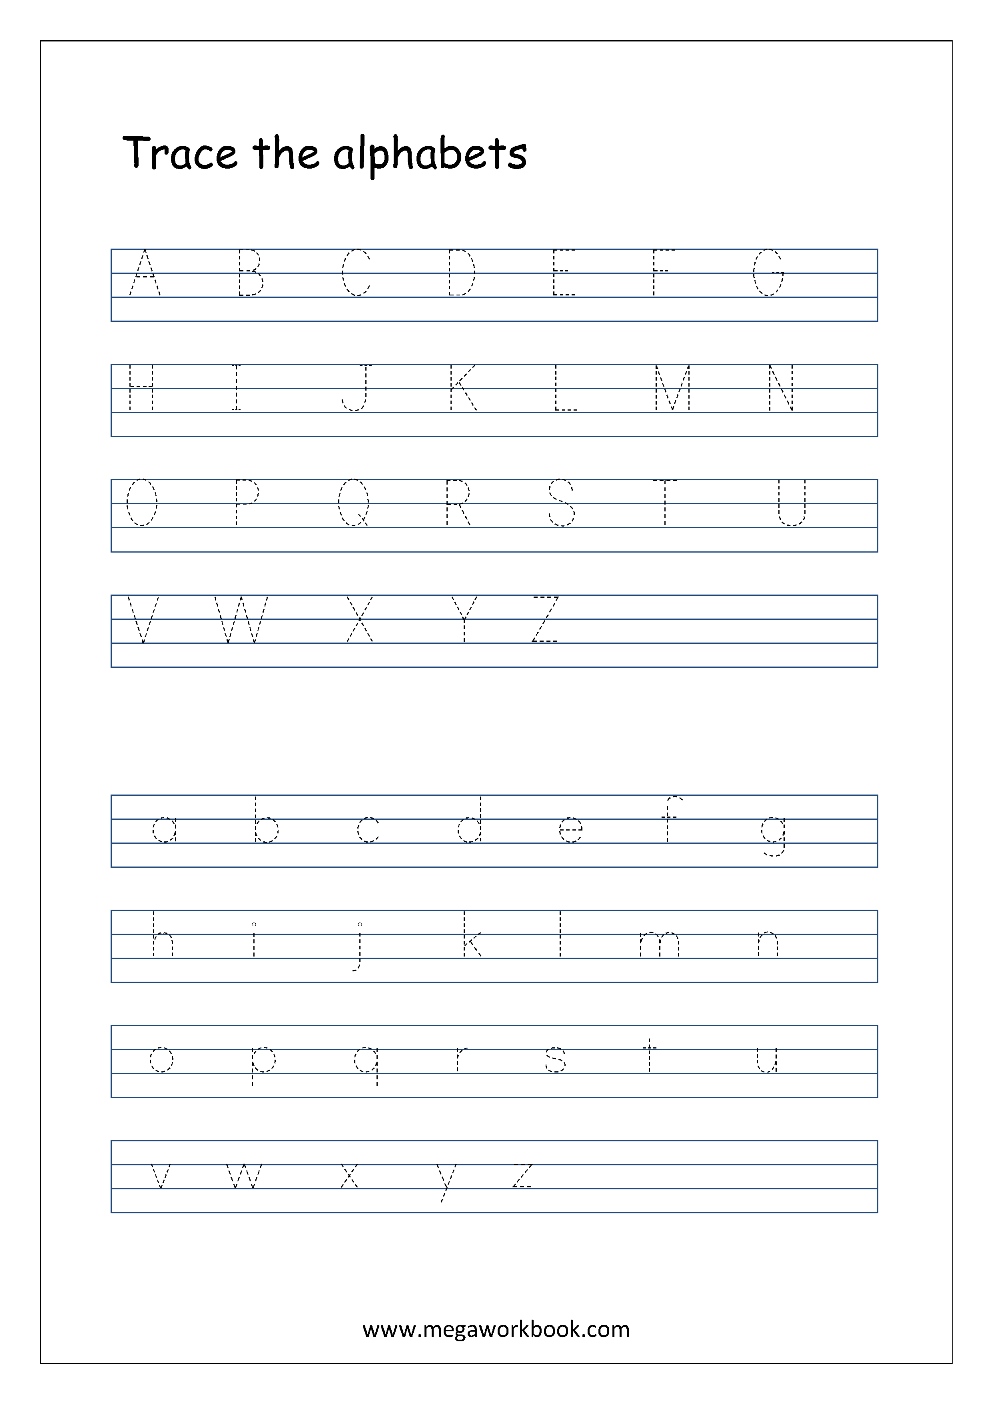 English Worksheet - Alphabet Tracing - Capital And Small in Tracing Small Letters Az